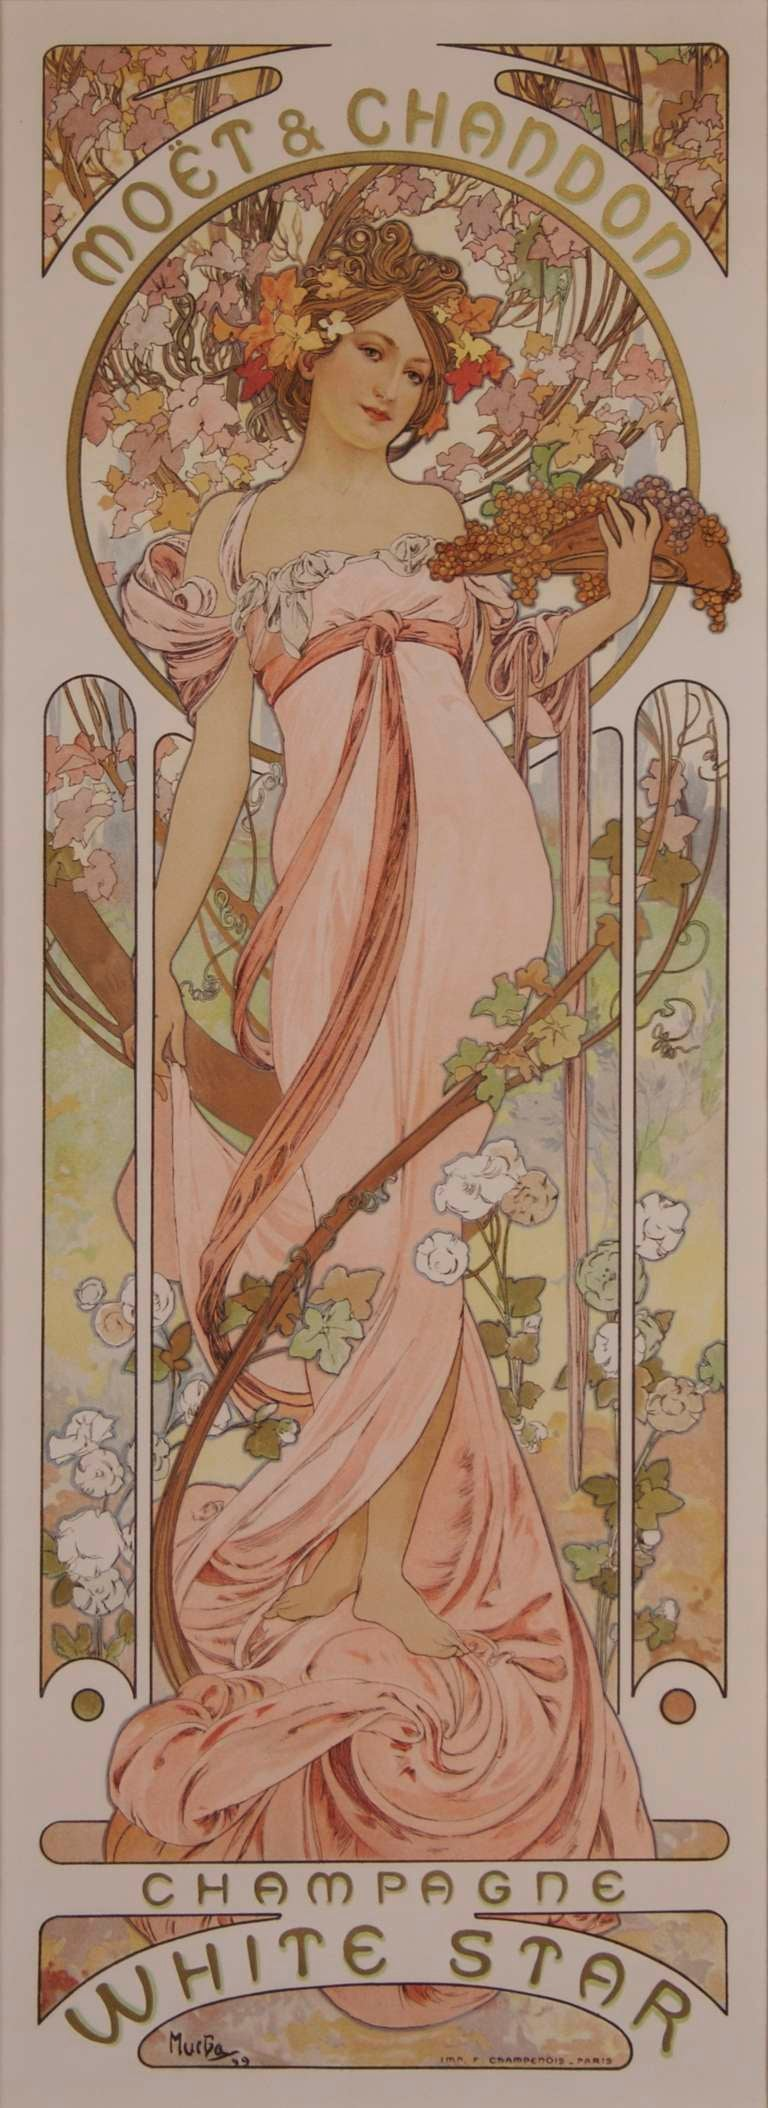 Pair of Original French Art Nouveau Period Posters by Alphonse Mucha 2